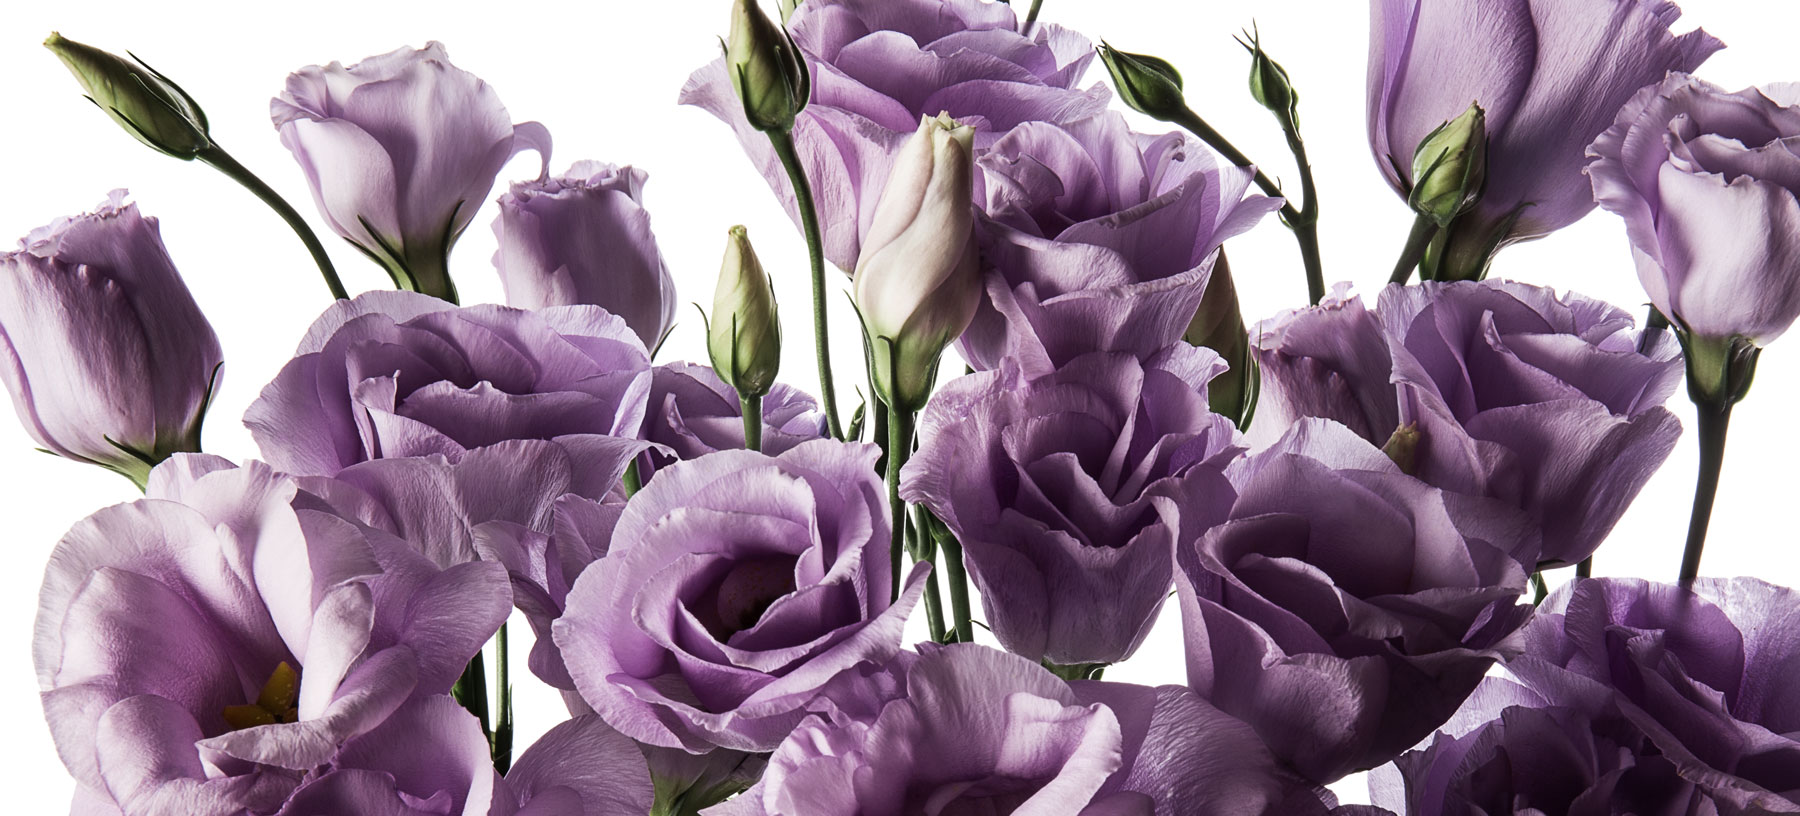 Lisianthus flowers flowerbx lisianthus are large bell shaped flowers with flaring pale purple petal like lobes they are long lasting flowers with four wide ruffled delicate petals mightylinksfo